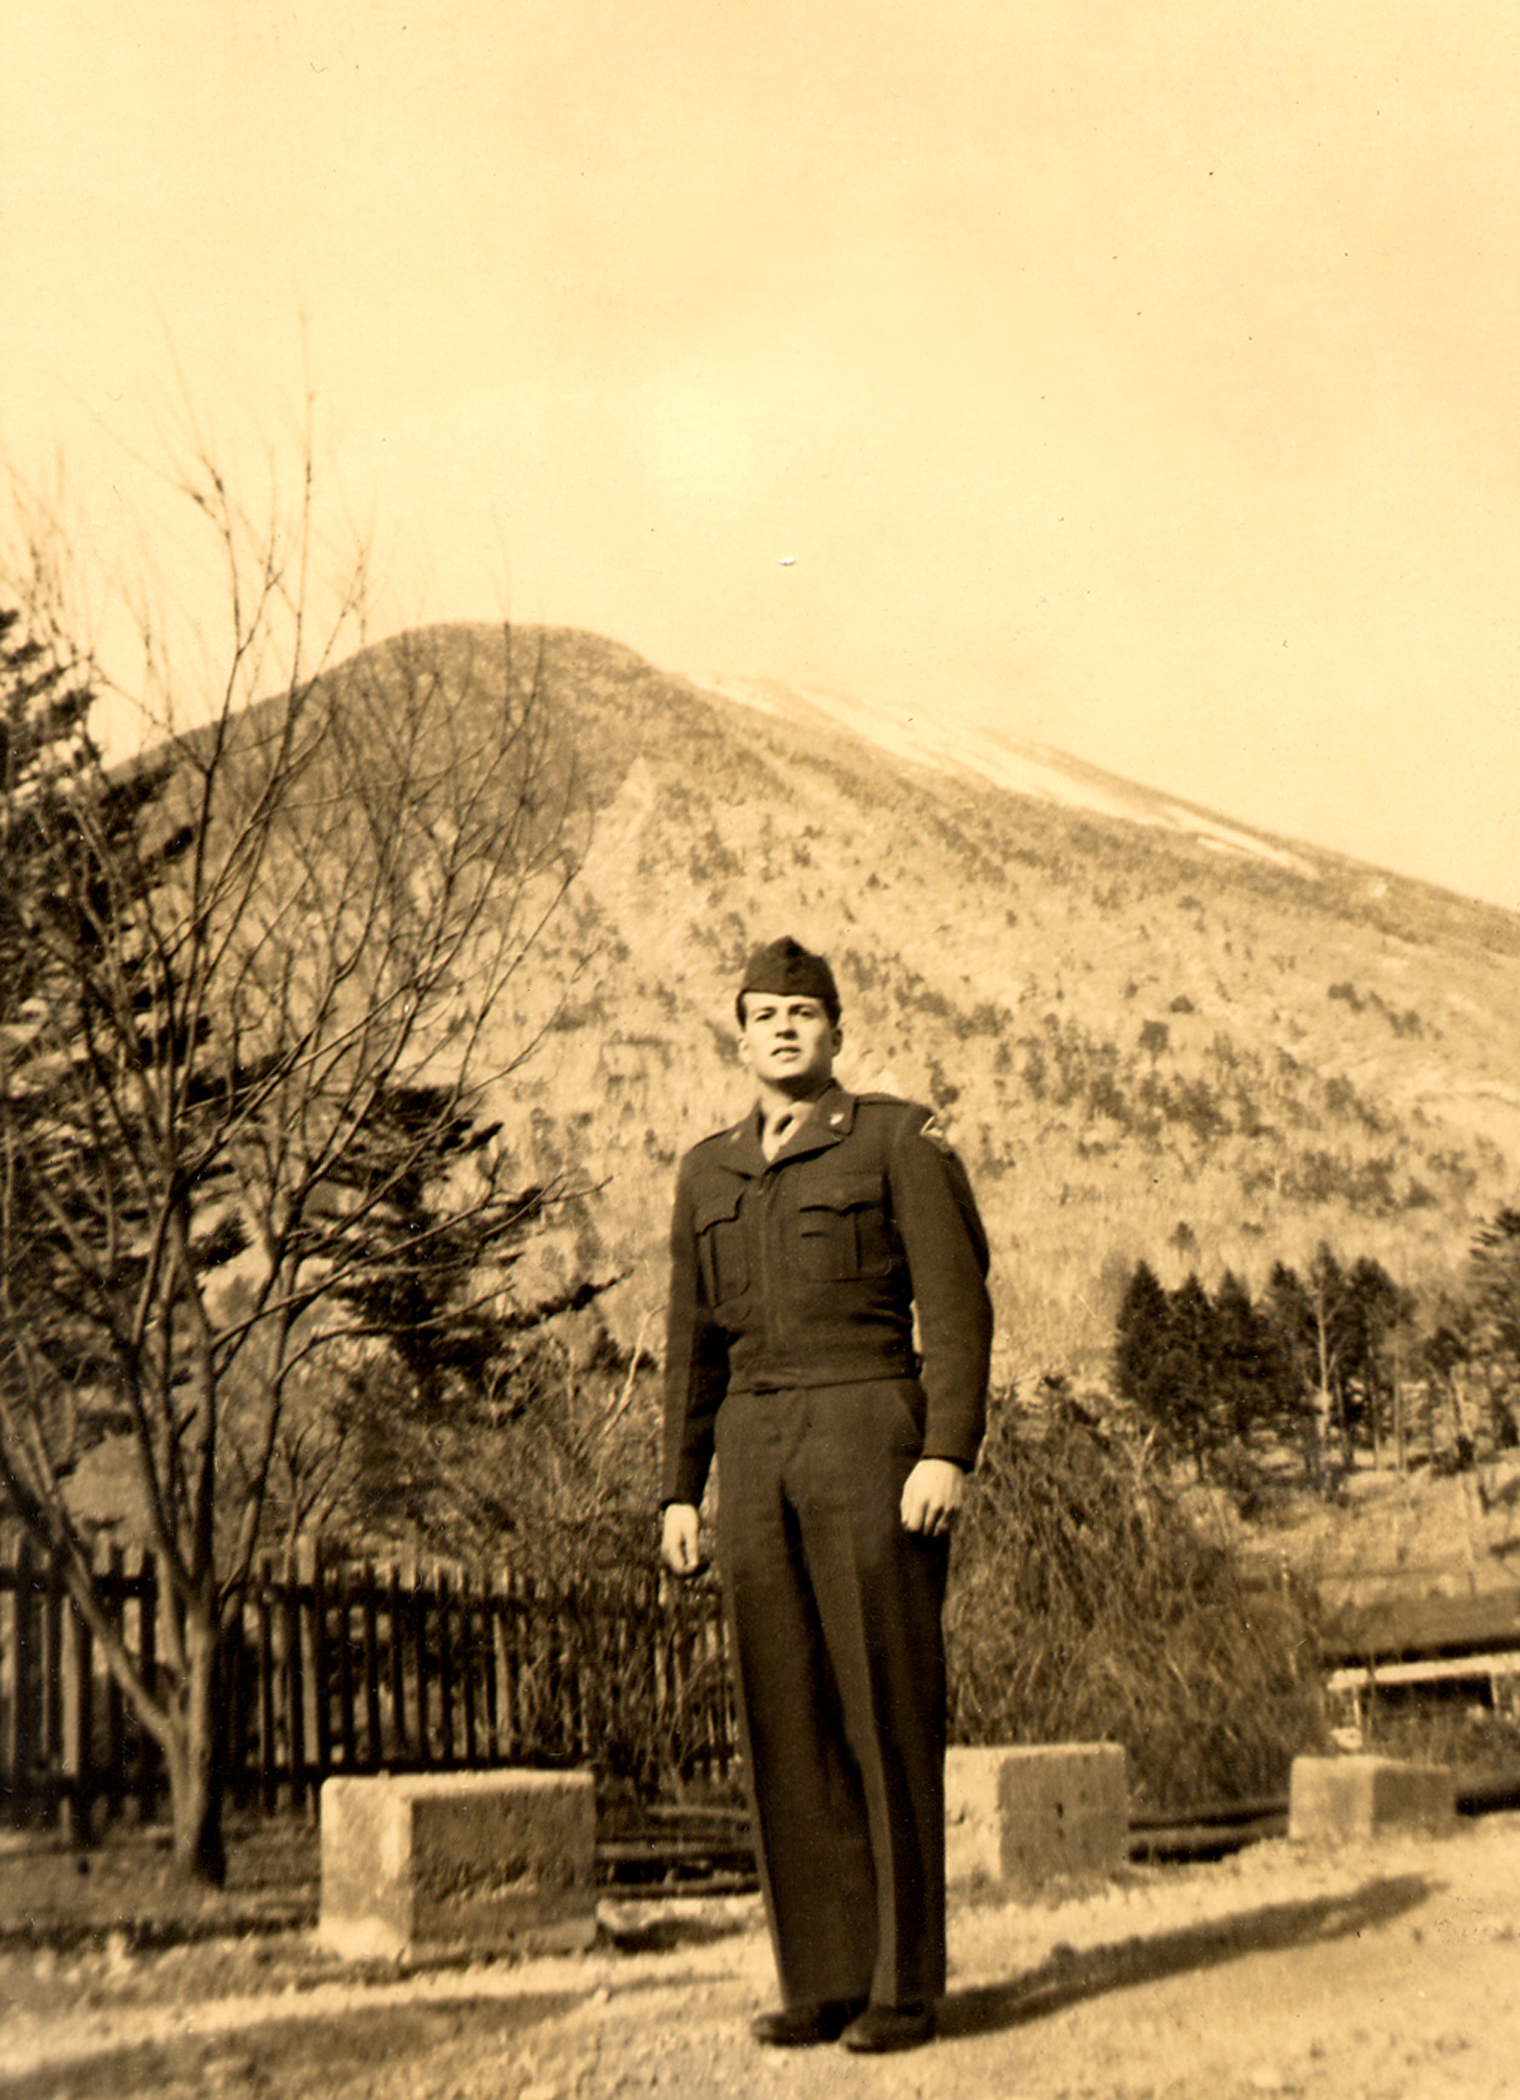 Japan-uniform standing fore mtn.jpg